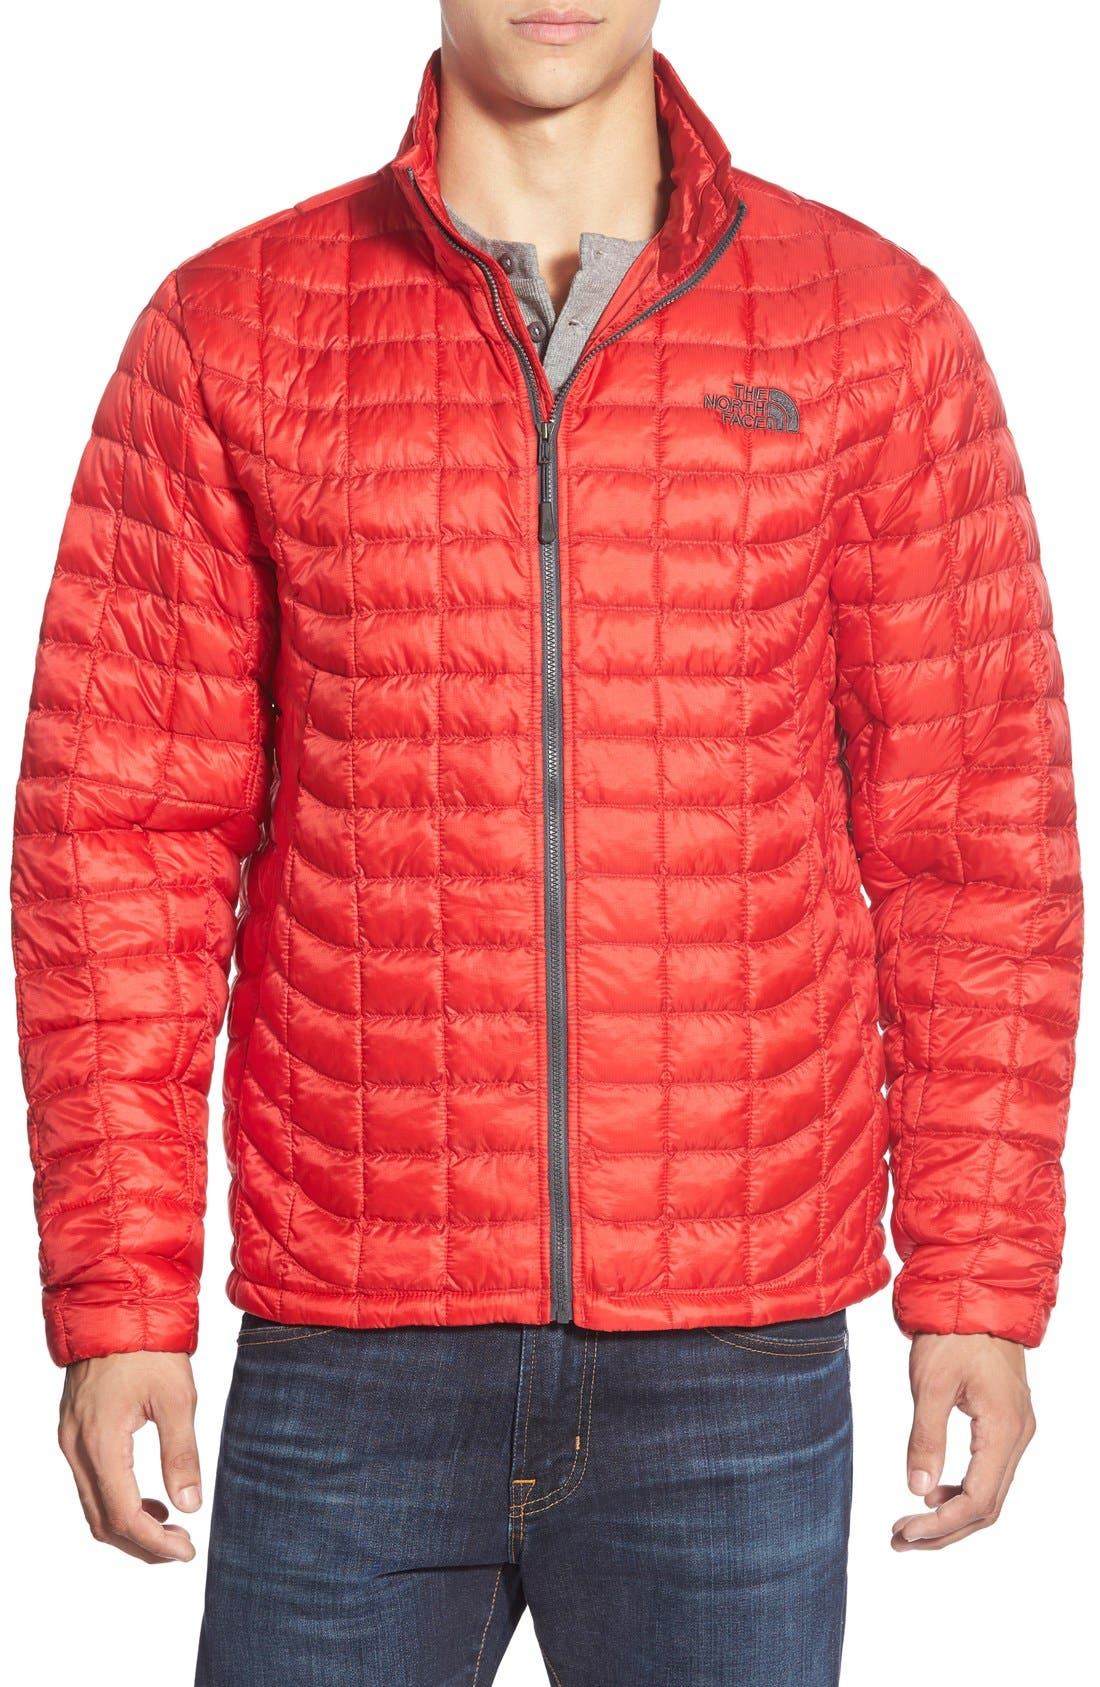 PrimaLoft<sup>®</sup> ThermoBall<sup>™</sup> Full Zip Jacket,                             Main thumbnail 26, color,